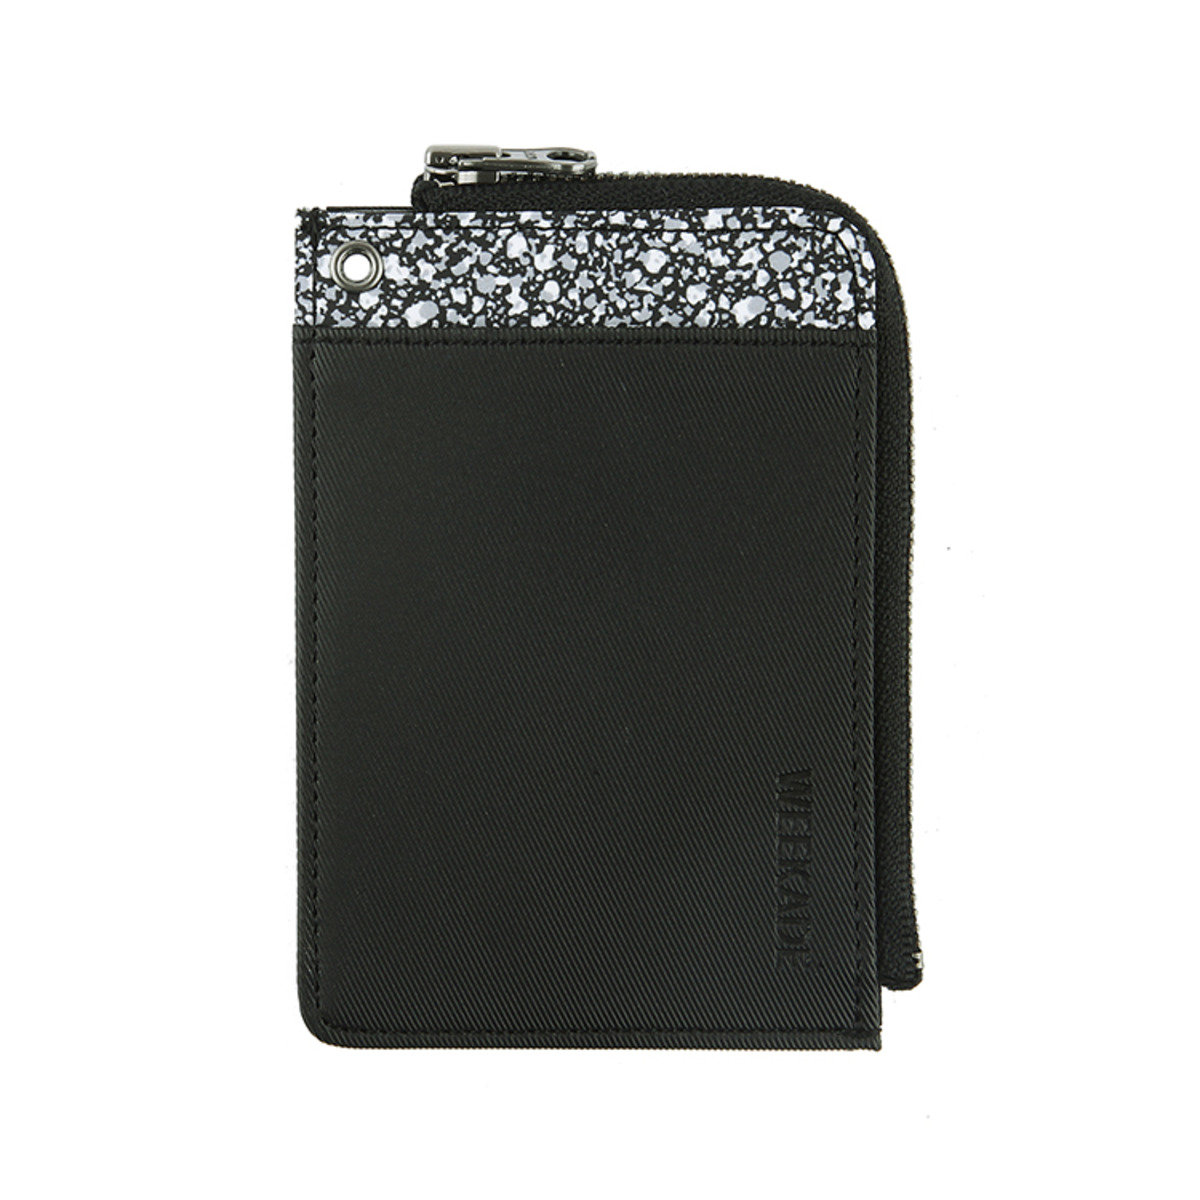 WEEKADE LET'S ZIP WALLET 小錢包 - Black Marble